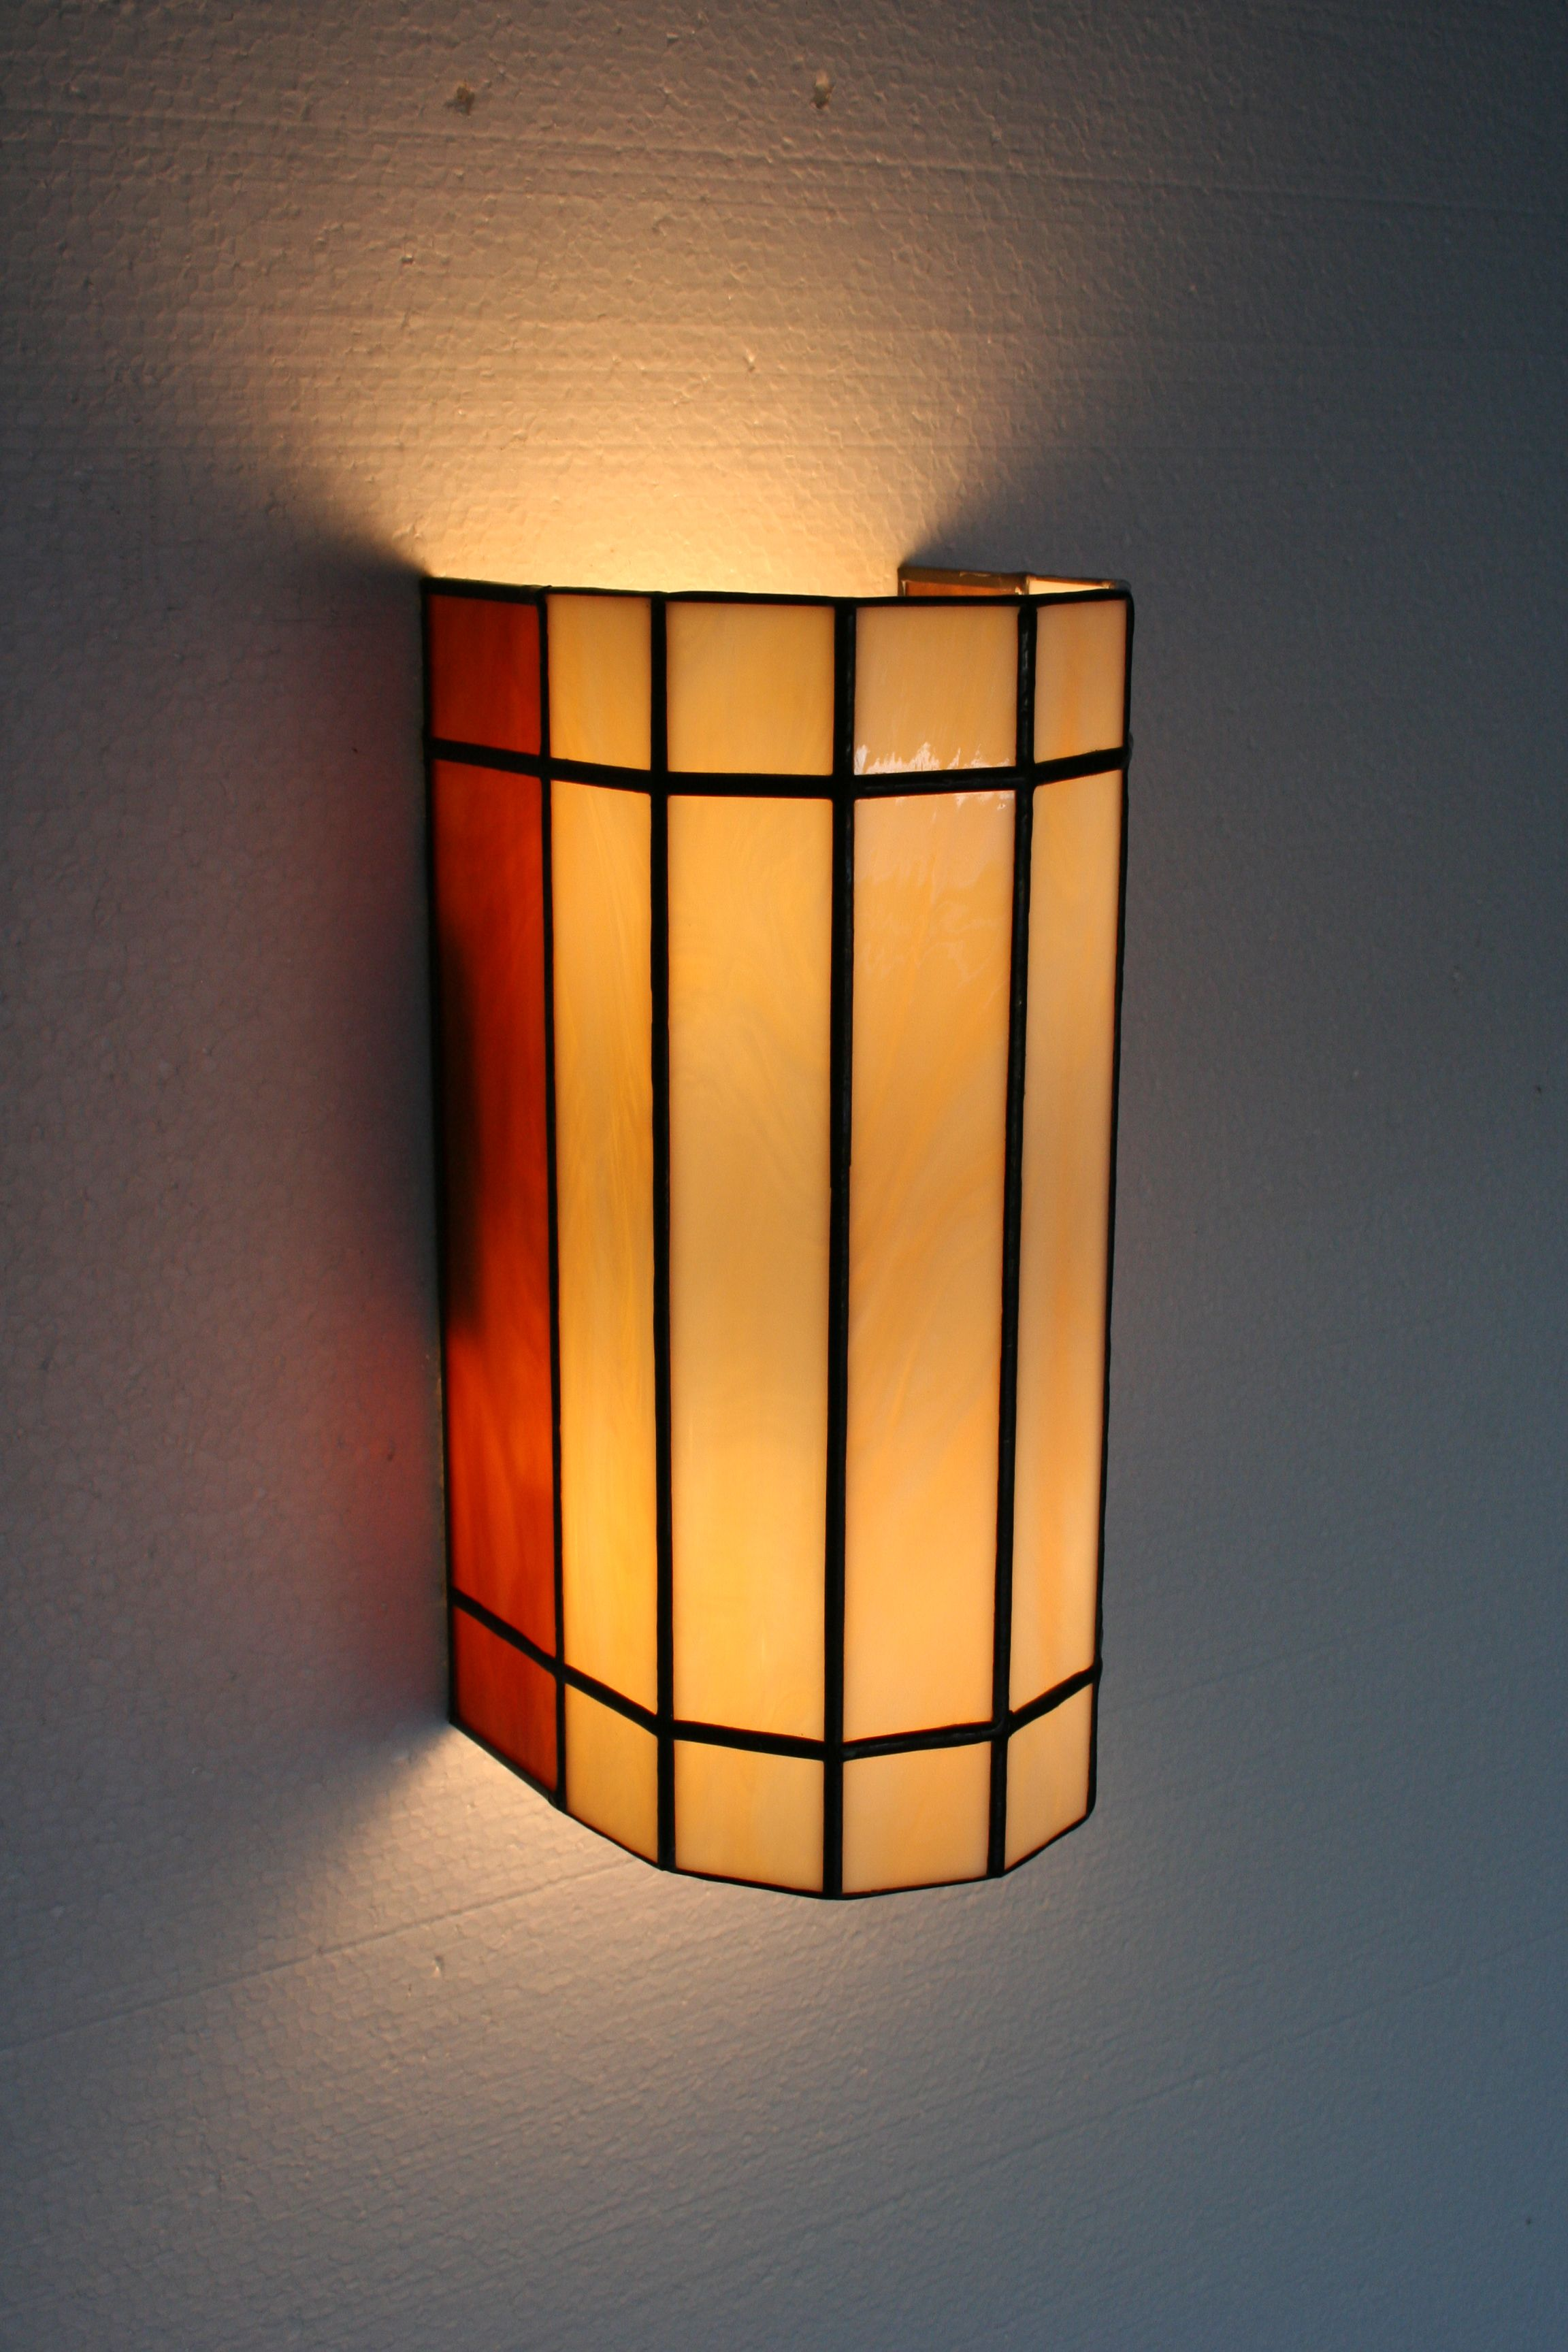 Sconces With Up And Down Lights Traditional Sconce Traditional Indoor Wall Sconces Li Battery Operated Wall Sconce Indoor Wall Sconces Battery Wall Lights